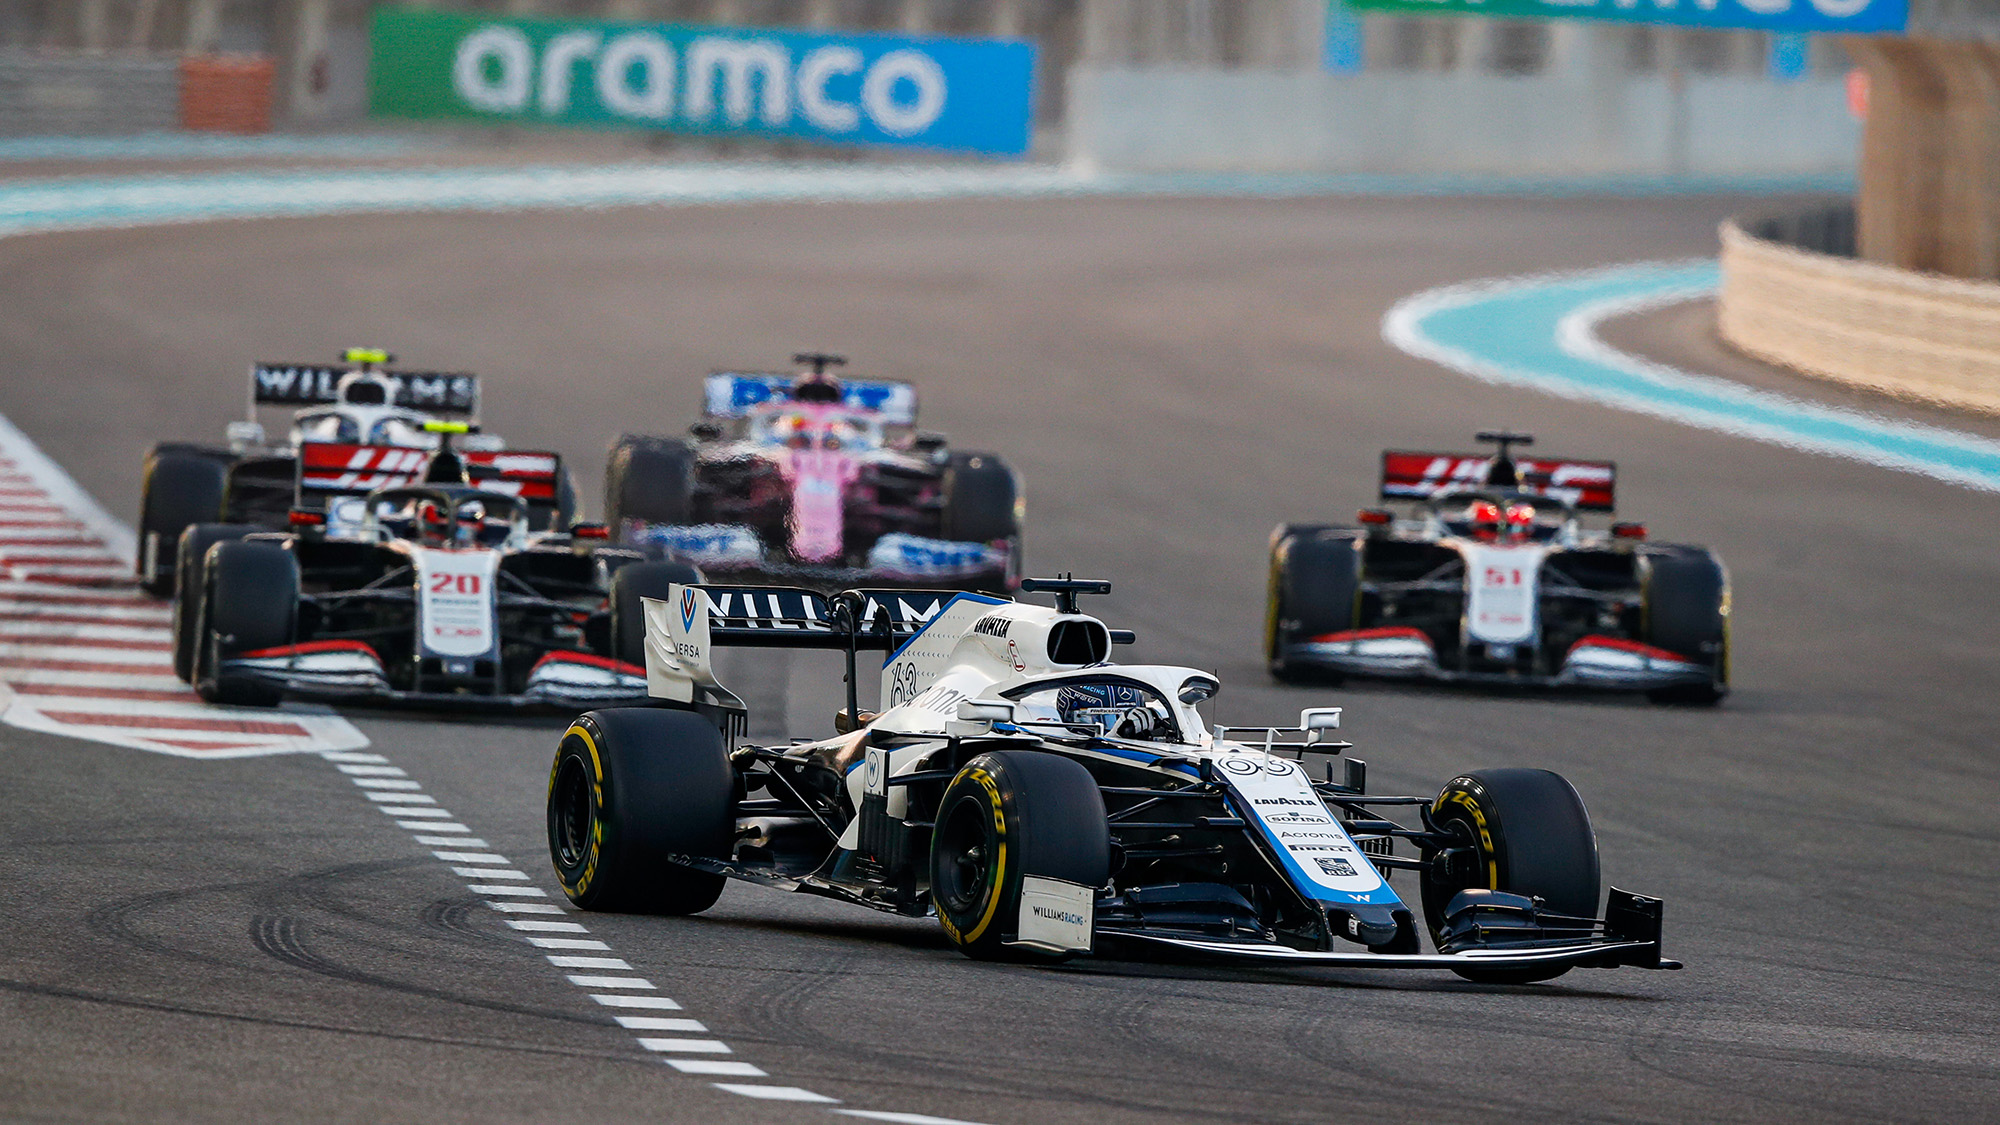 Sergio Perez at the back of the race at the 2020 Abu Dhabi Grand Prix